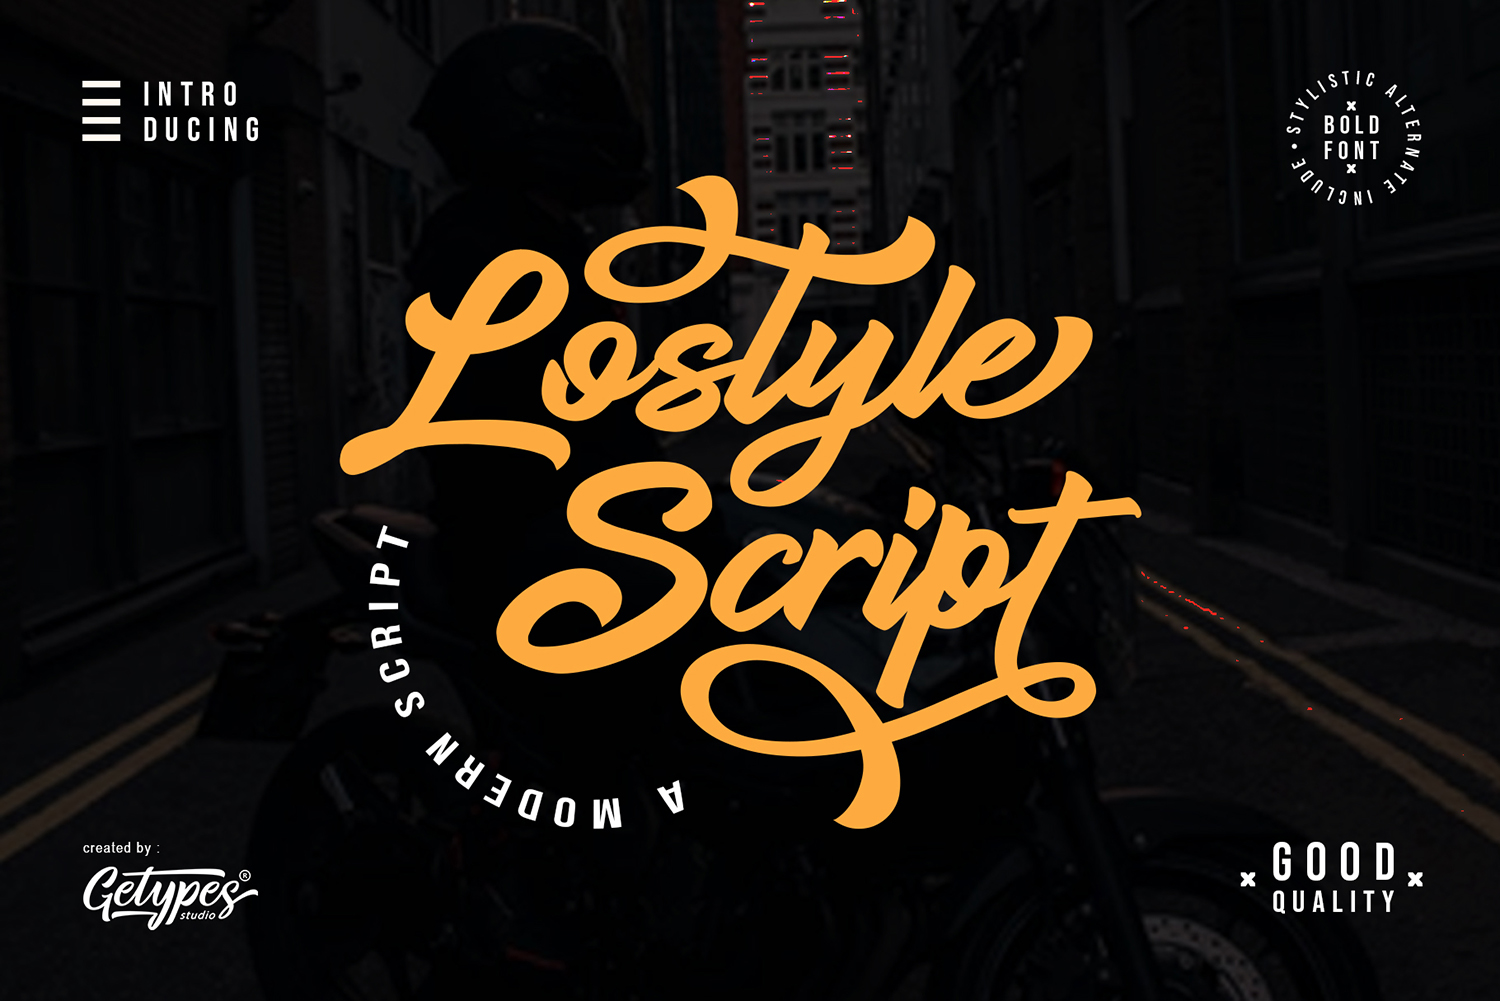 Lostyle Free Font